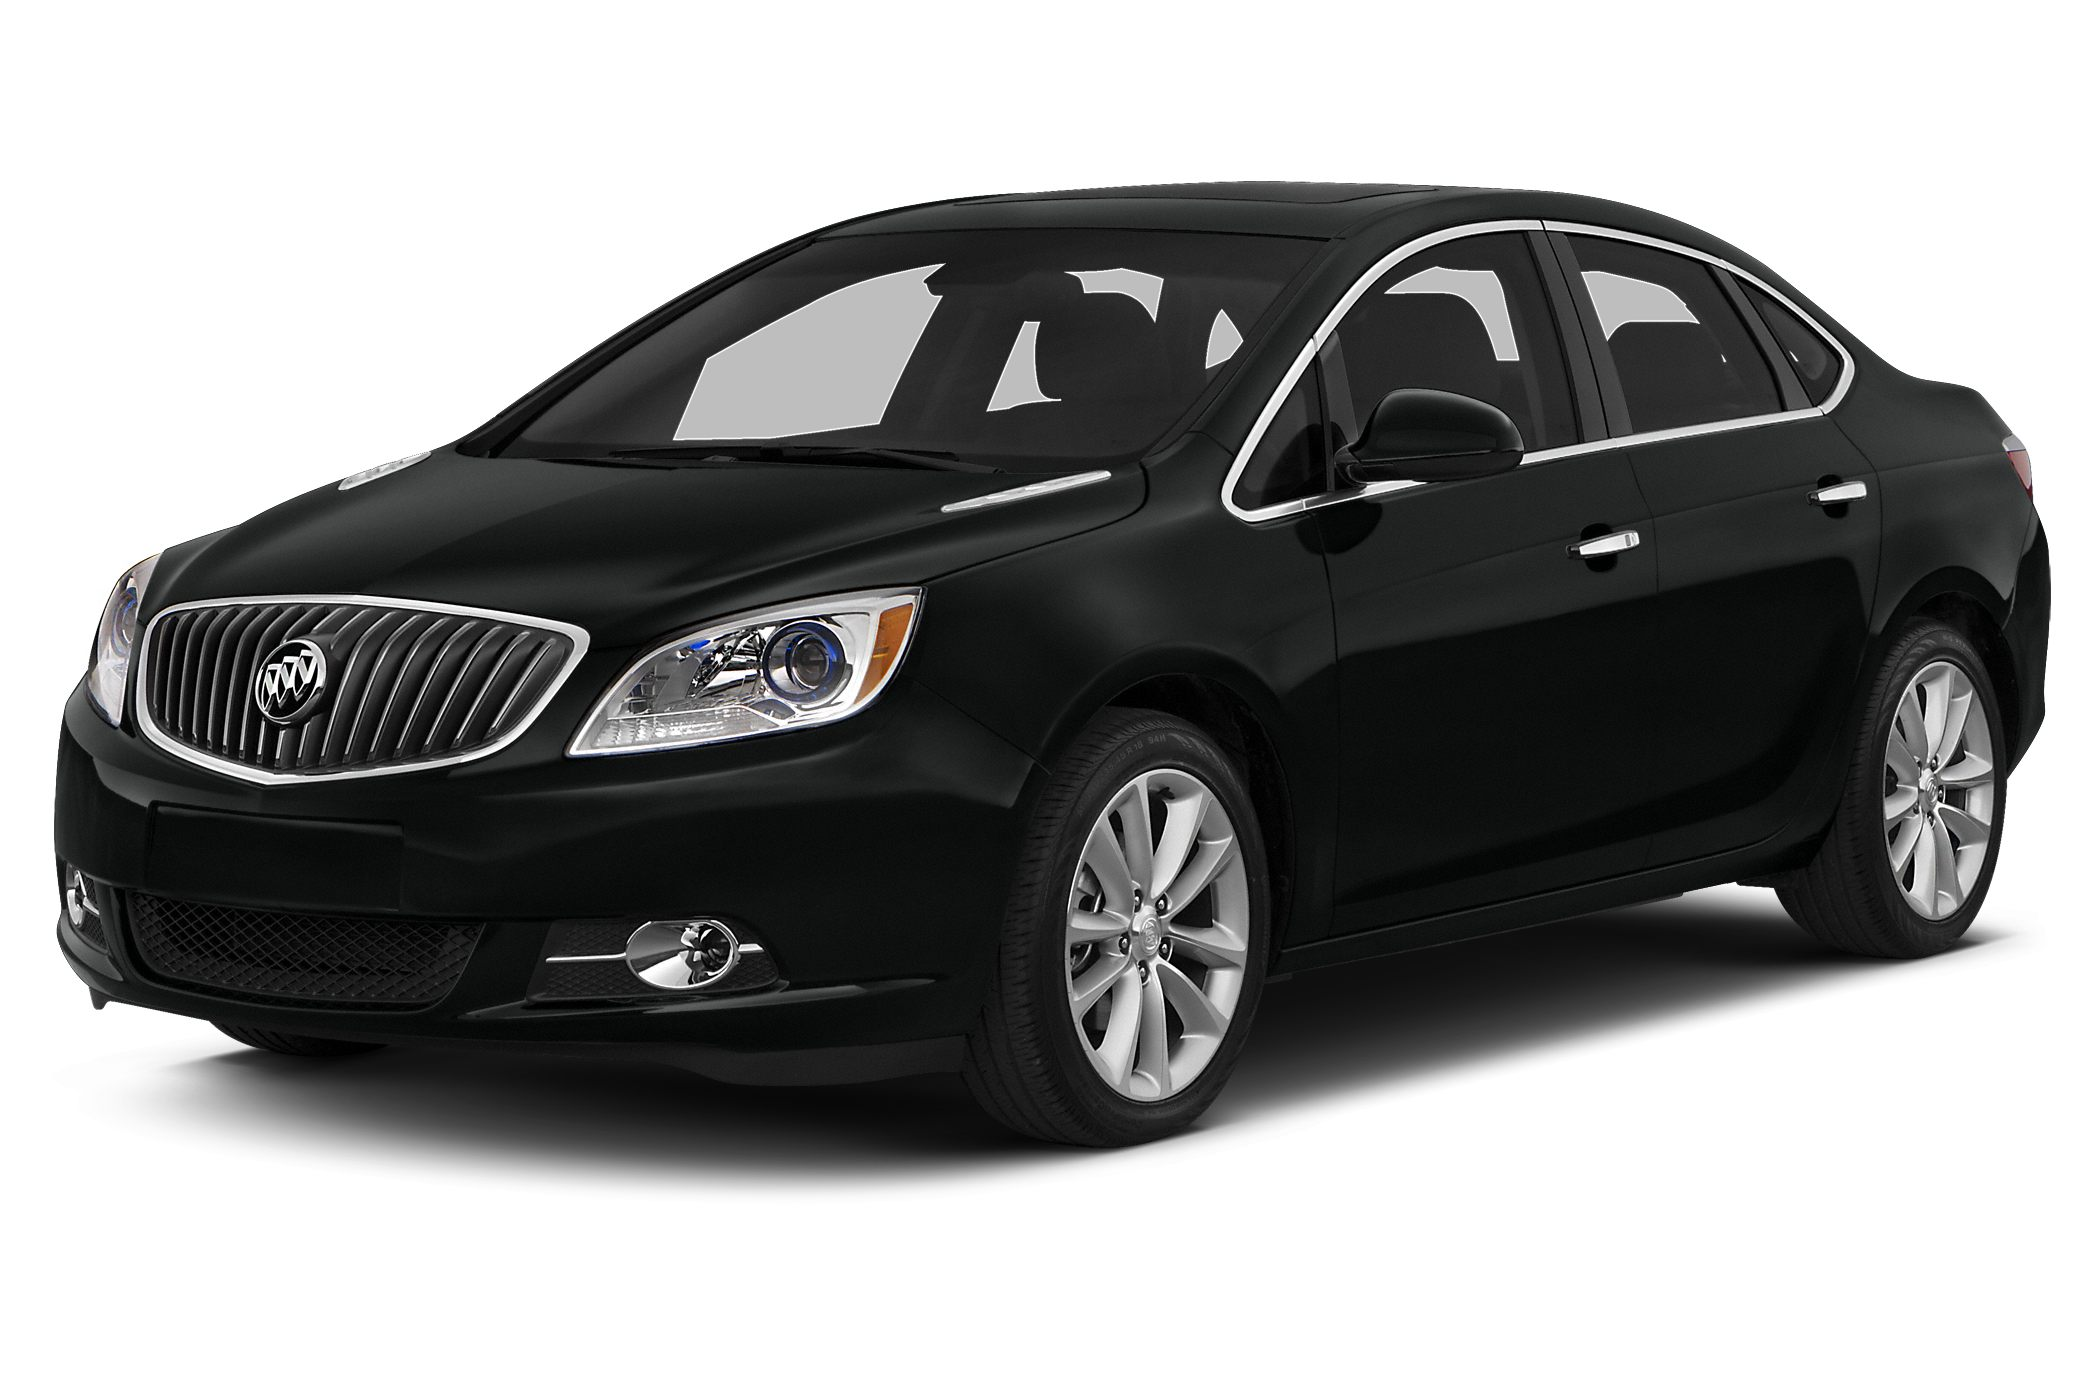 2014 Buick Verano Base Sedan for sale in Newport News for $24,625 with 0 miles.